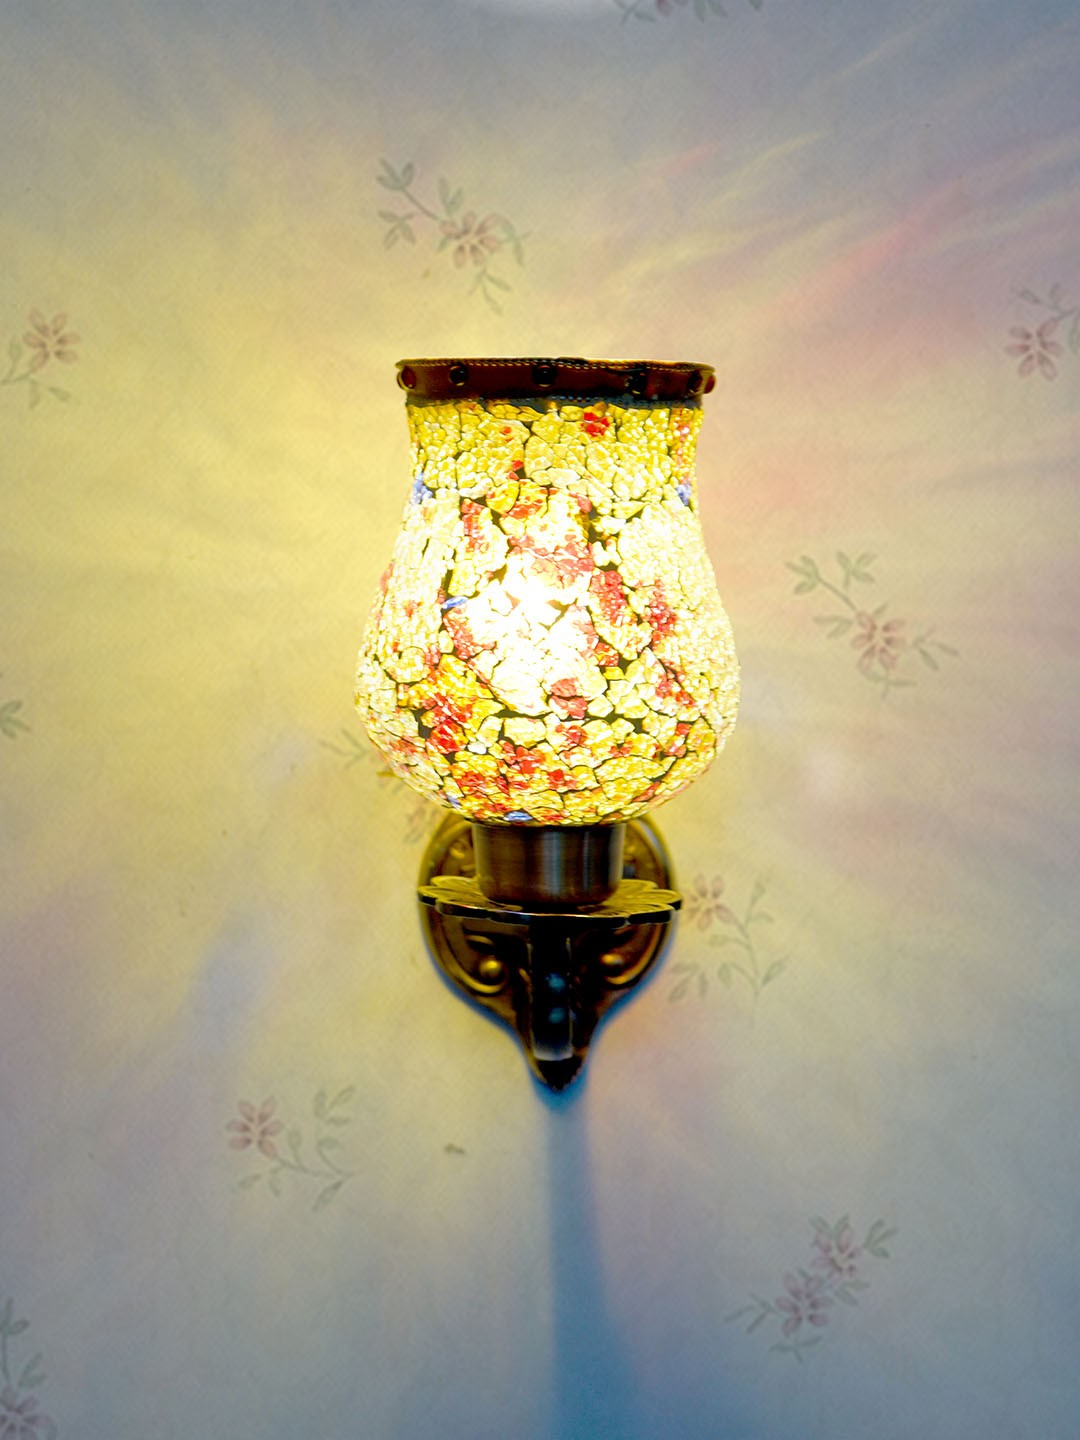 Traditional Meena Aluminium 1 Lamp Wall Light in Antique Brass Finish and Amber Yellow Crackle Glass Shade for  Dining Room, Bedroom, Living Room